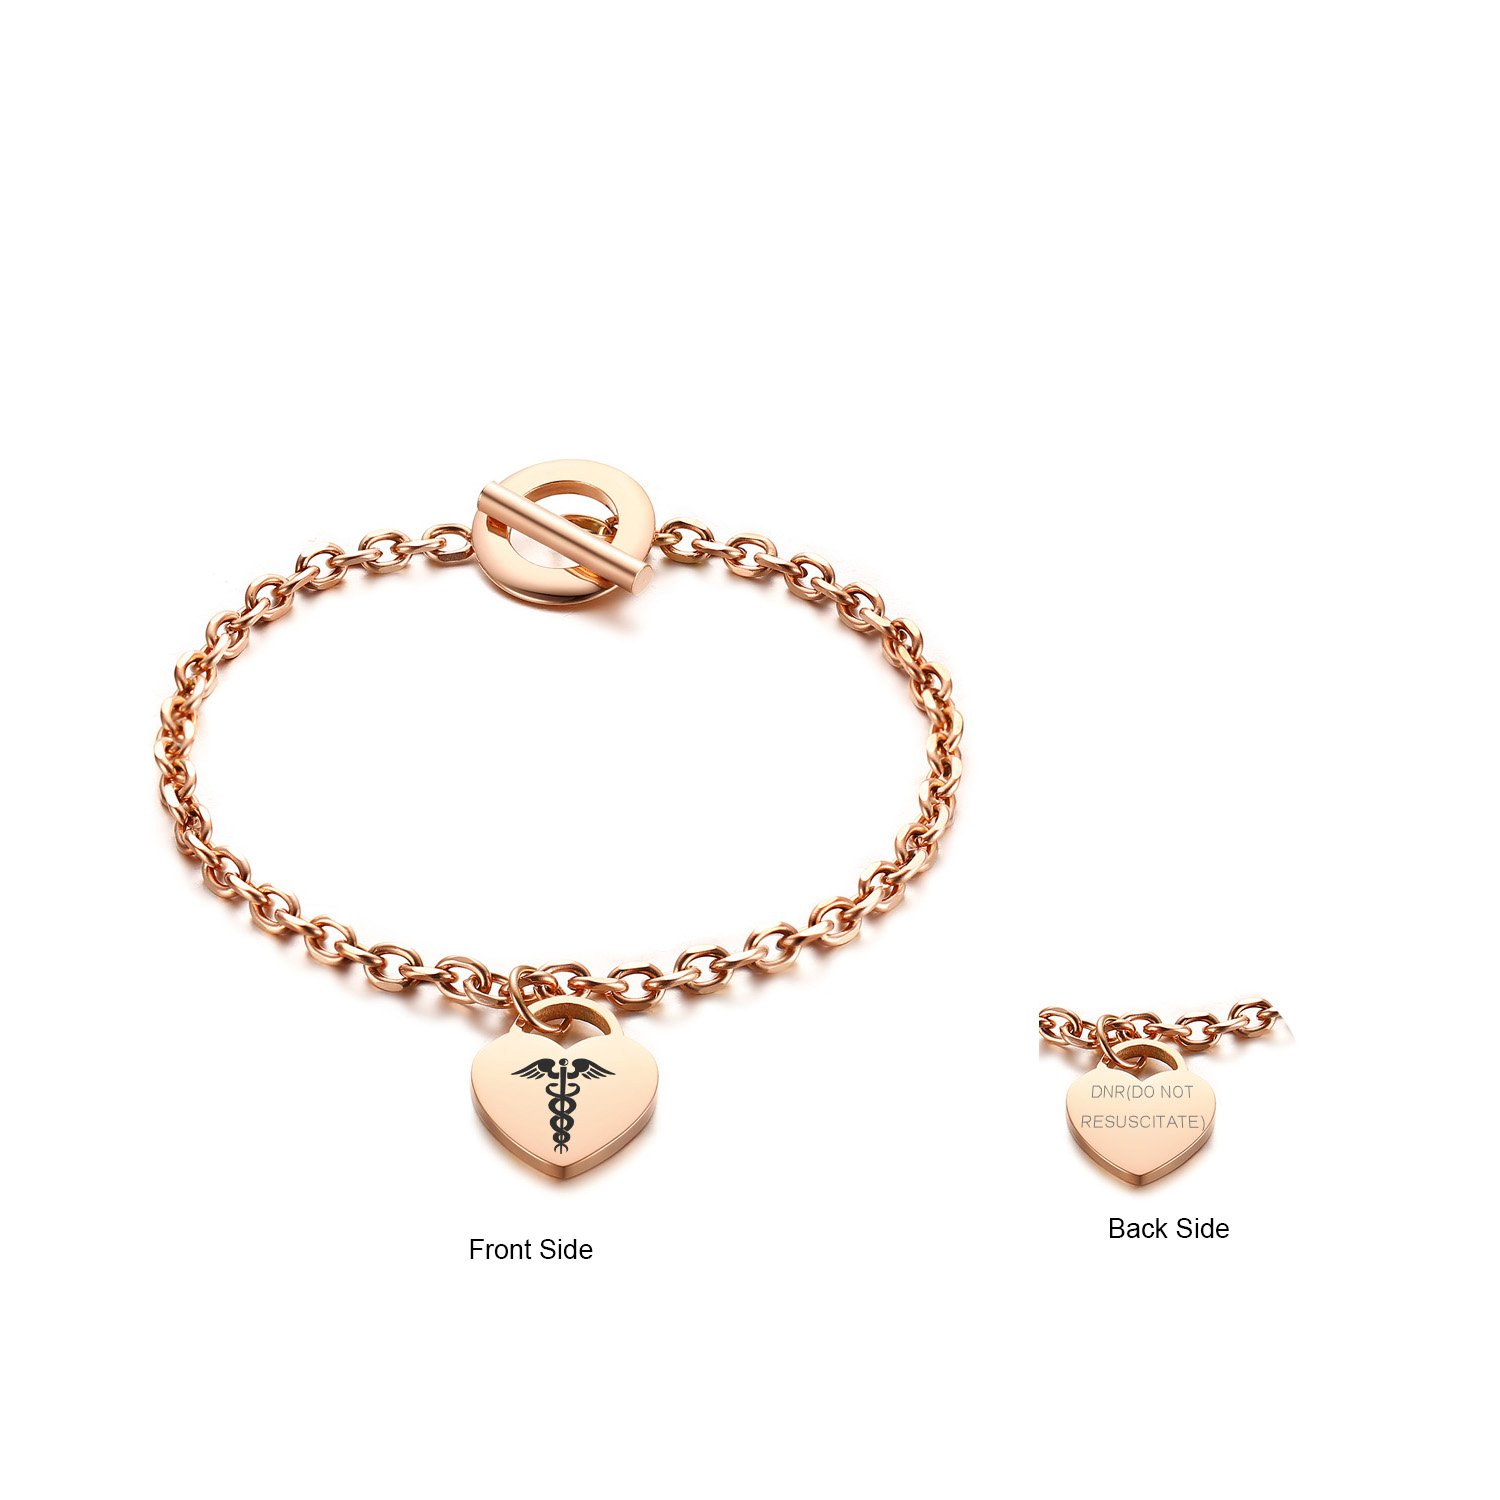 VNOX Free Engraving -Medical Caduceus Rose Gold Plated Stainless Steel Heart Drop Toggle Clasp Bracelet,7.5